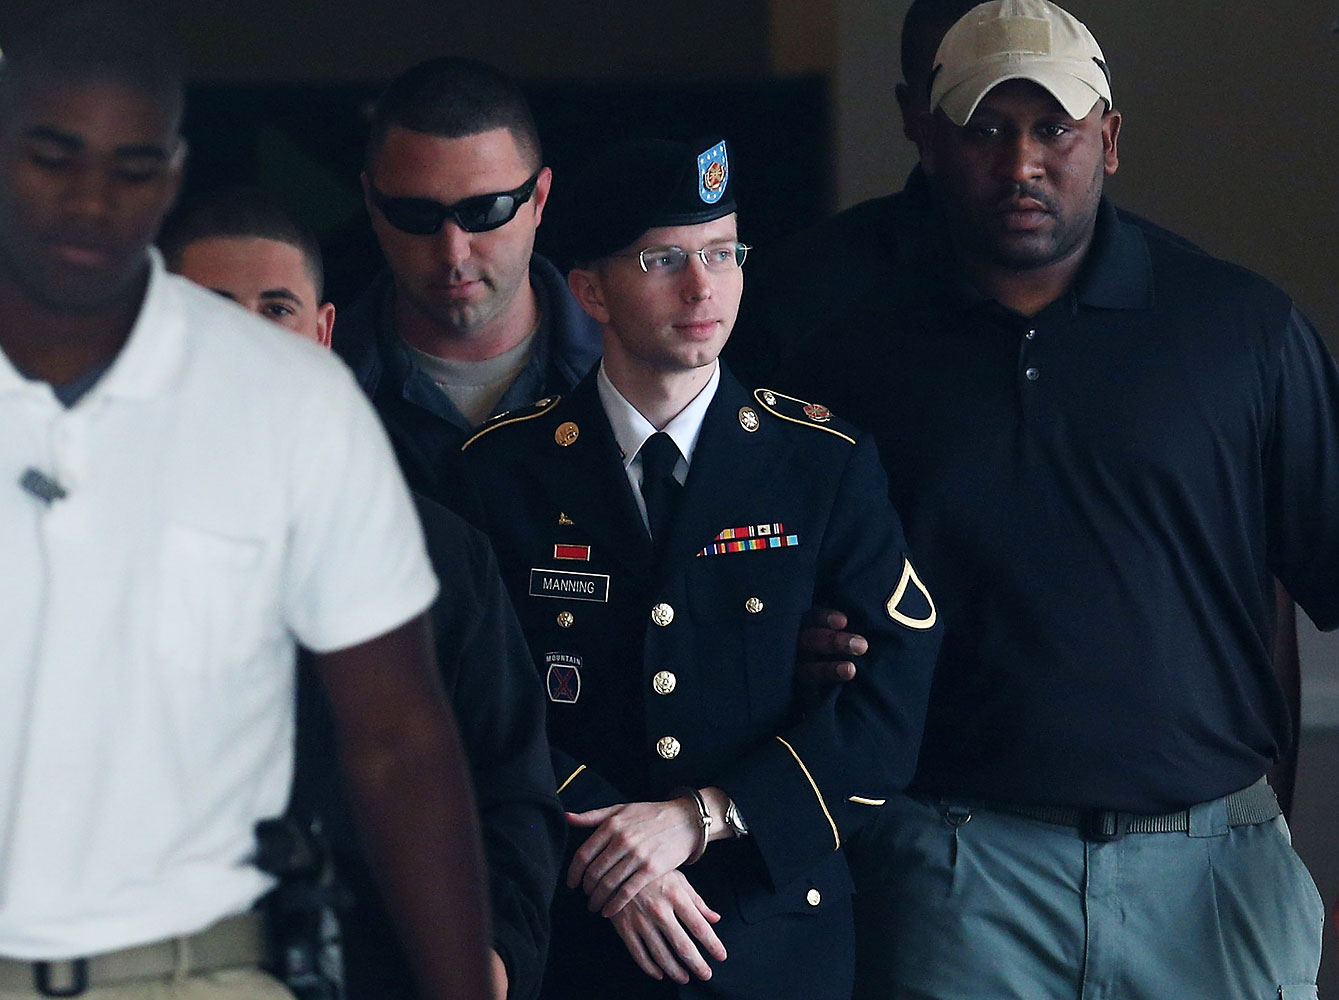 Bradley Manning, now known as Chelsea Manning, being escorted out of a military-court facility in Fort Meade, Md., on Aug. 20, 2013